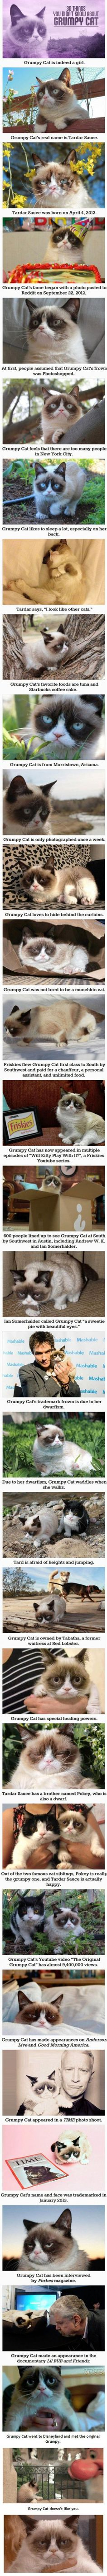 Some Funny Facts About Grumpy Cat.